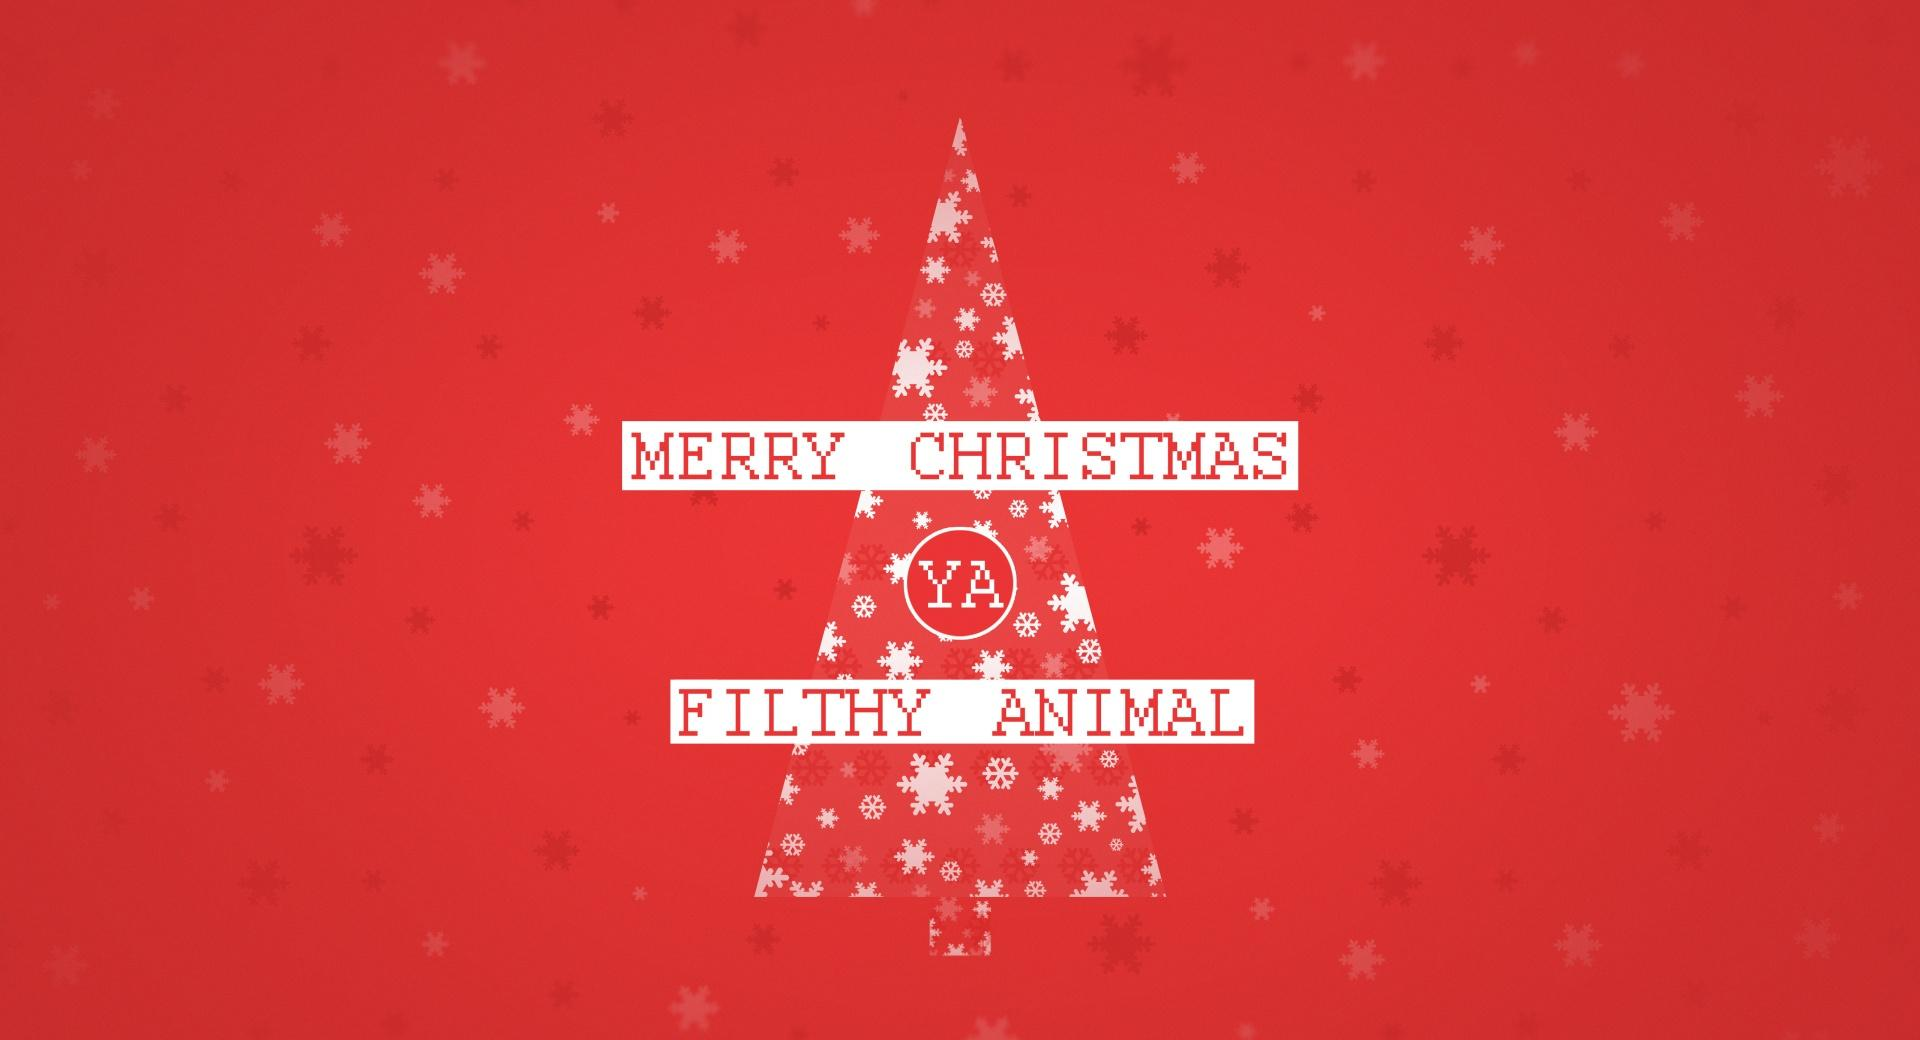 Merry Christmas Ya Filthy Animal wallpapers HD quality